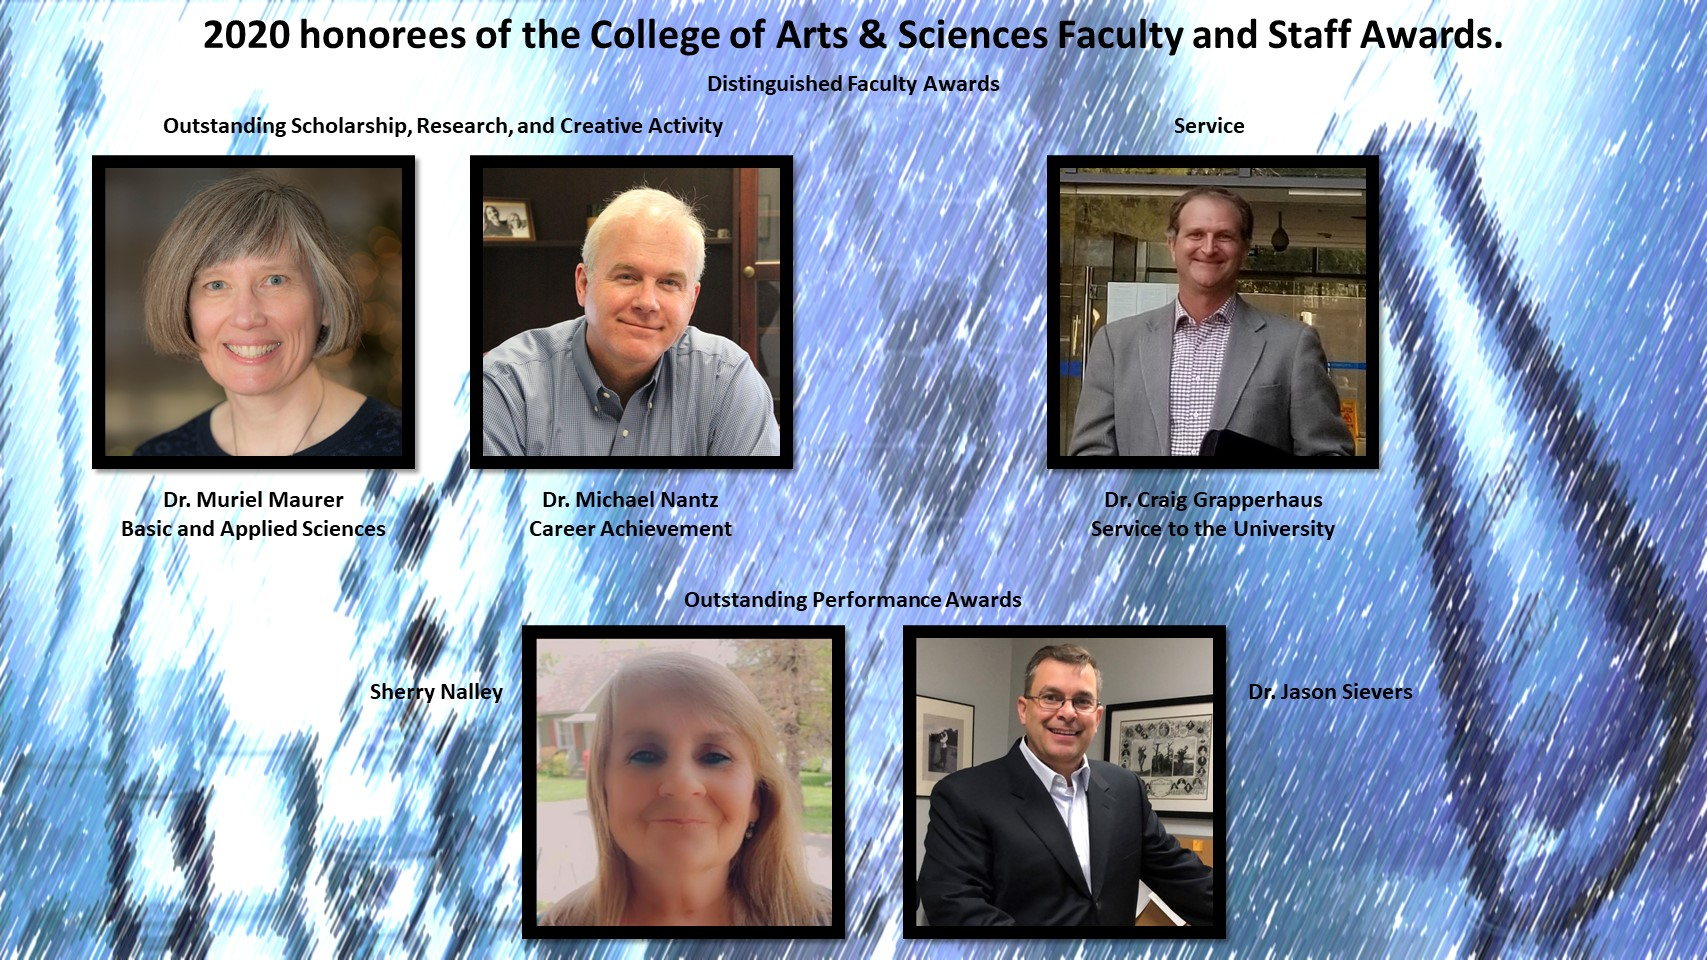 2020 honorees of the College of Arts & Sciences Faculty and Staff Awards.